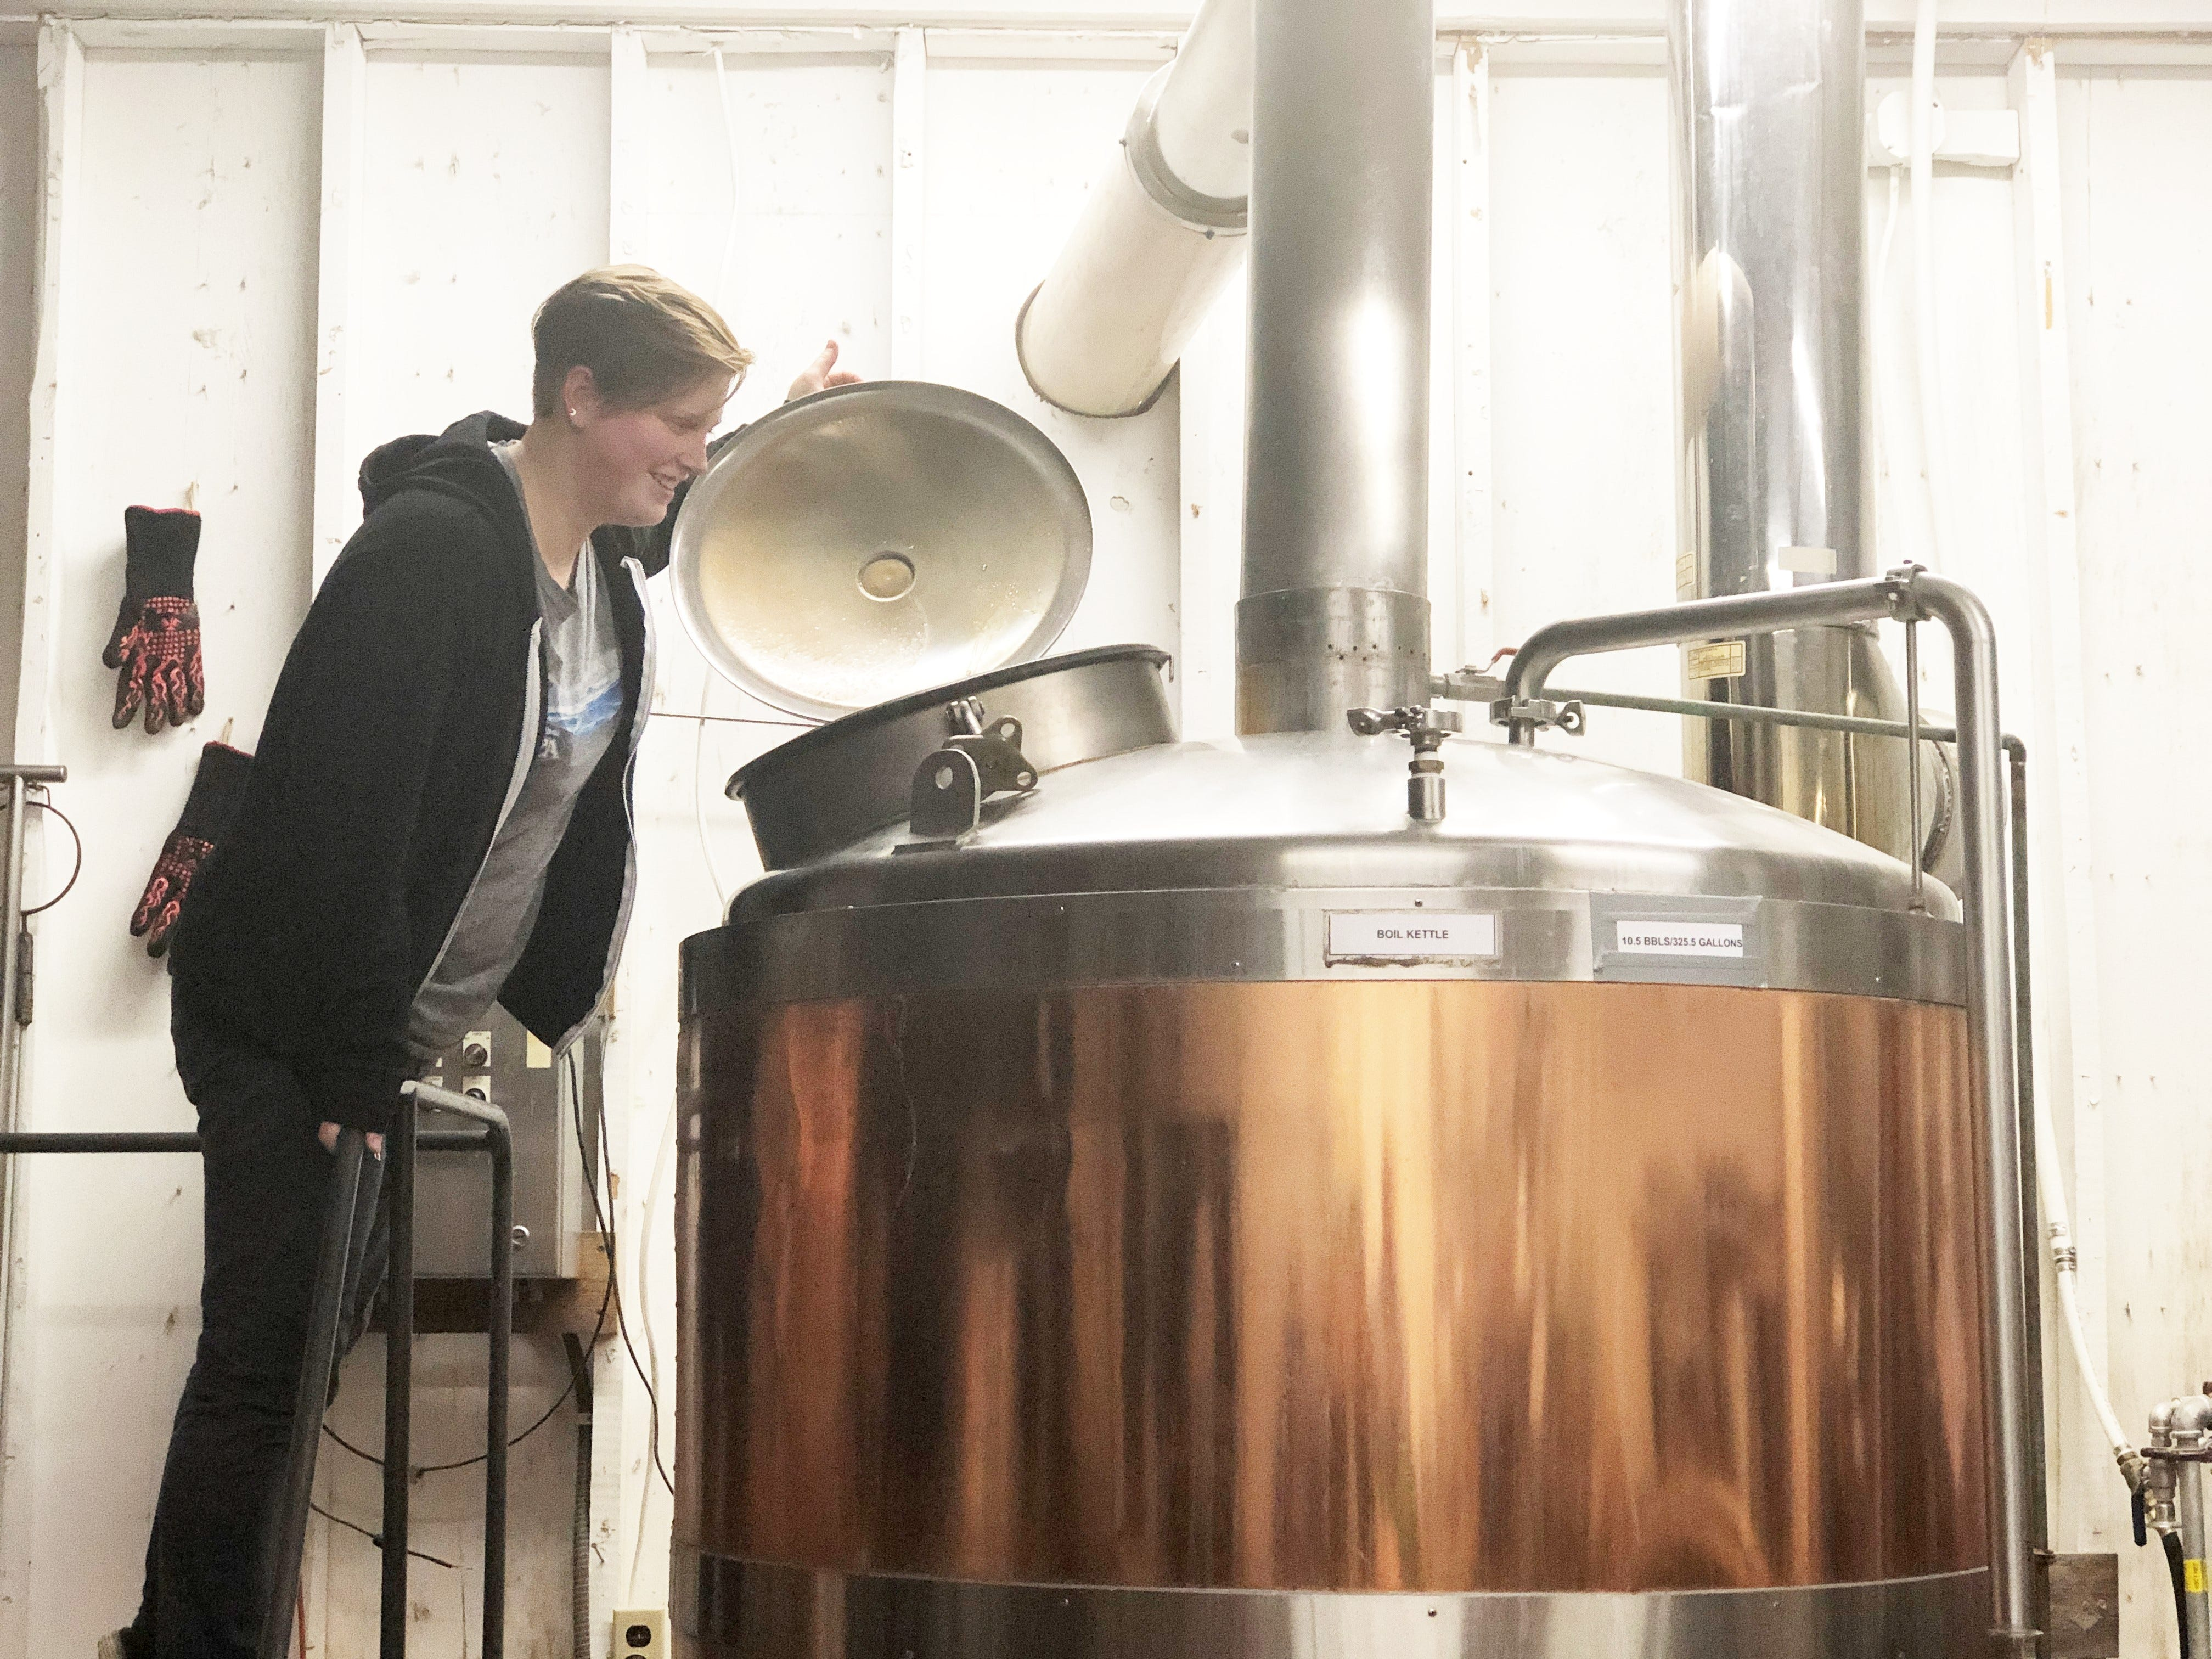 Head brewer Jordan Skeen was working an idyllic job at a brewery in Brevard, North Carolina when the folks at Clinch River Brewing lured her back to East Tennessee with a dream opportunity to work in the midst of Norris Dam State Park.